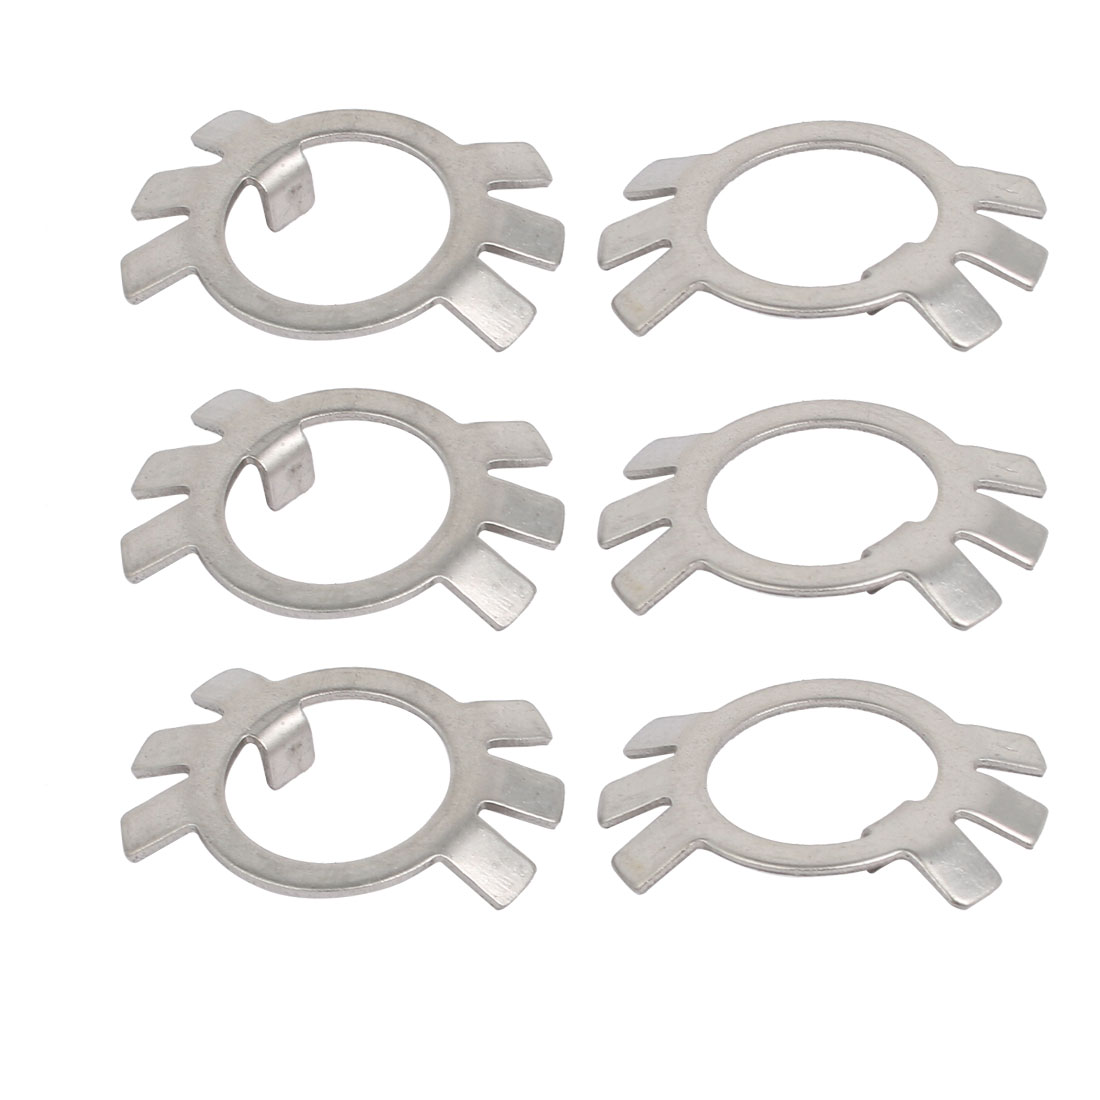 50pcs M16 Carbon Steel External Lock Tab Spindle Washer for Round Slotted Nut